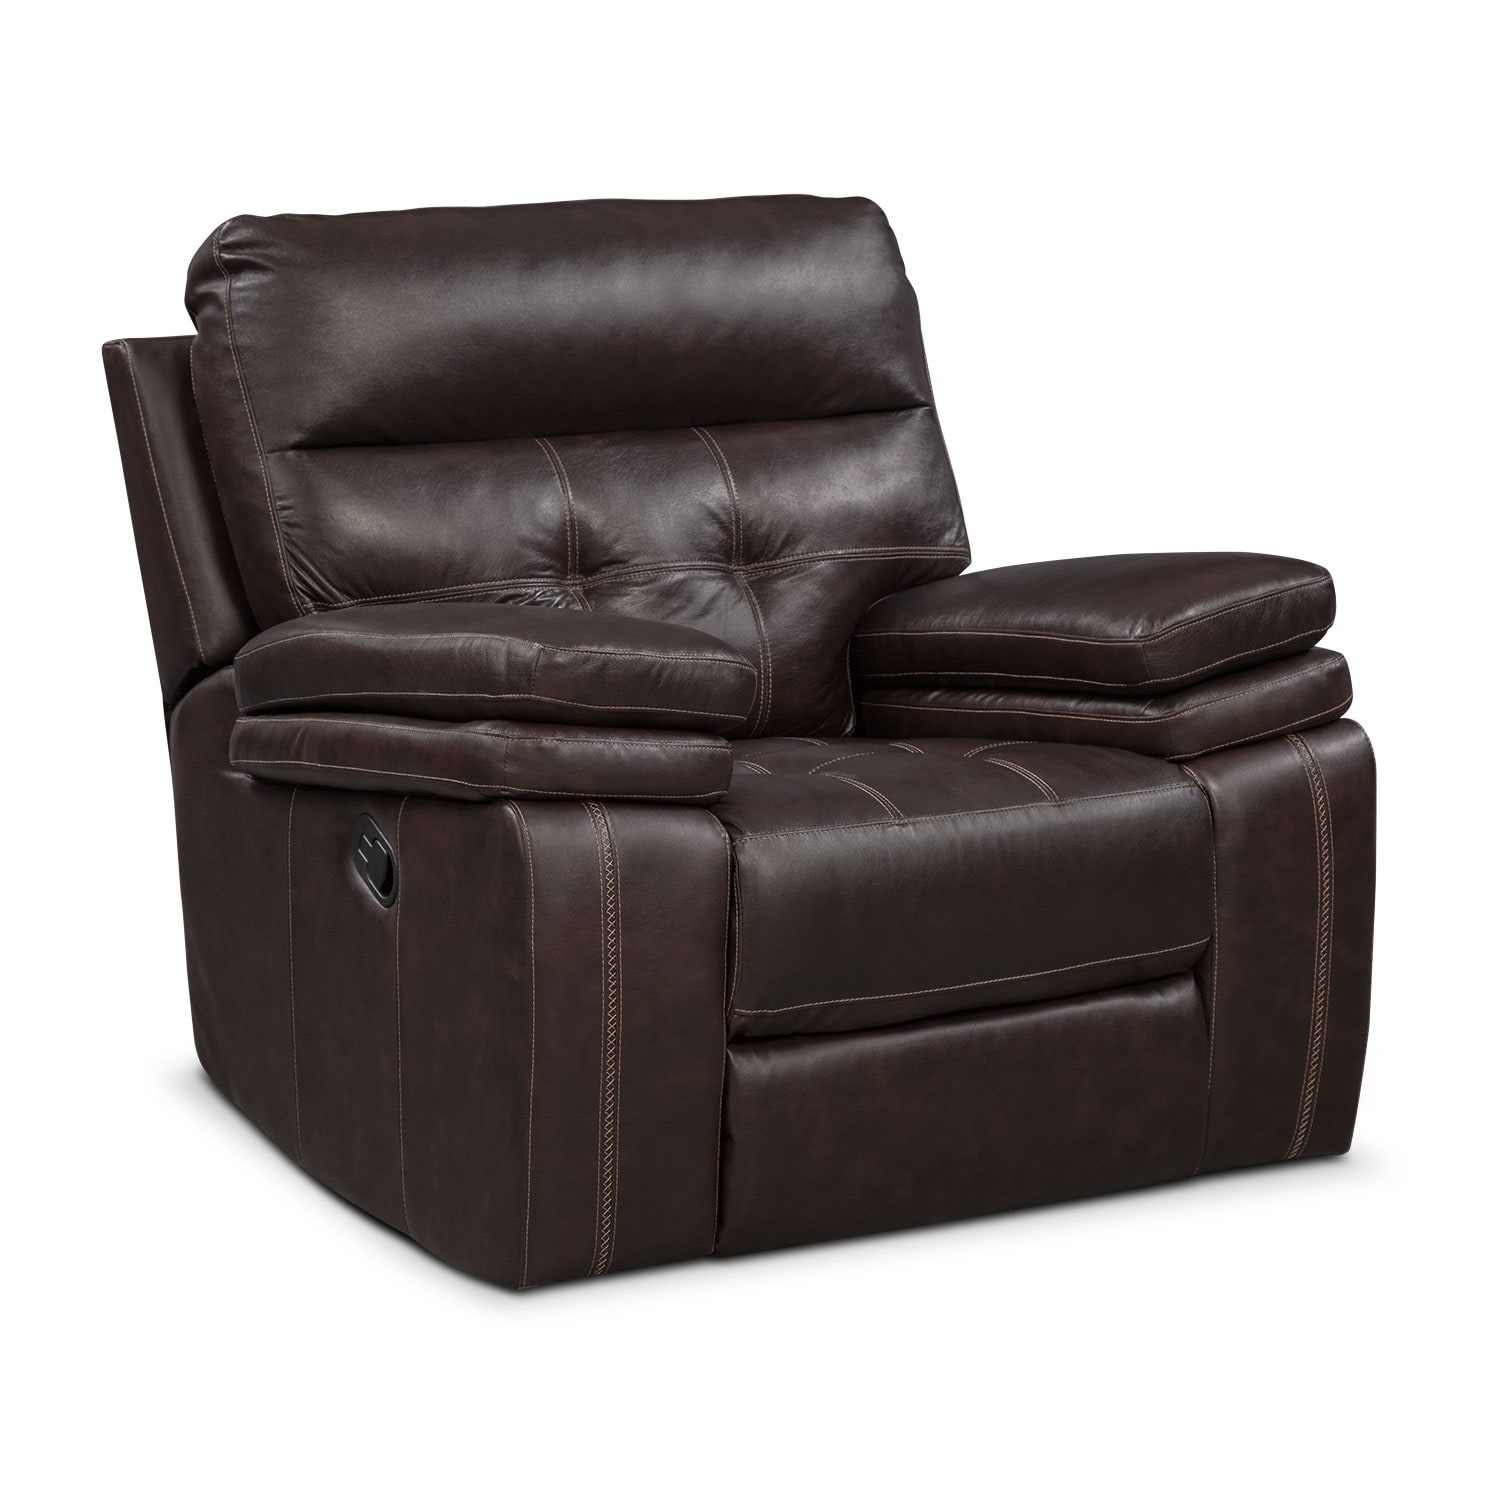 [Brisco Brown Manual Recliner]